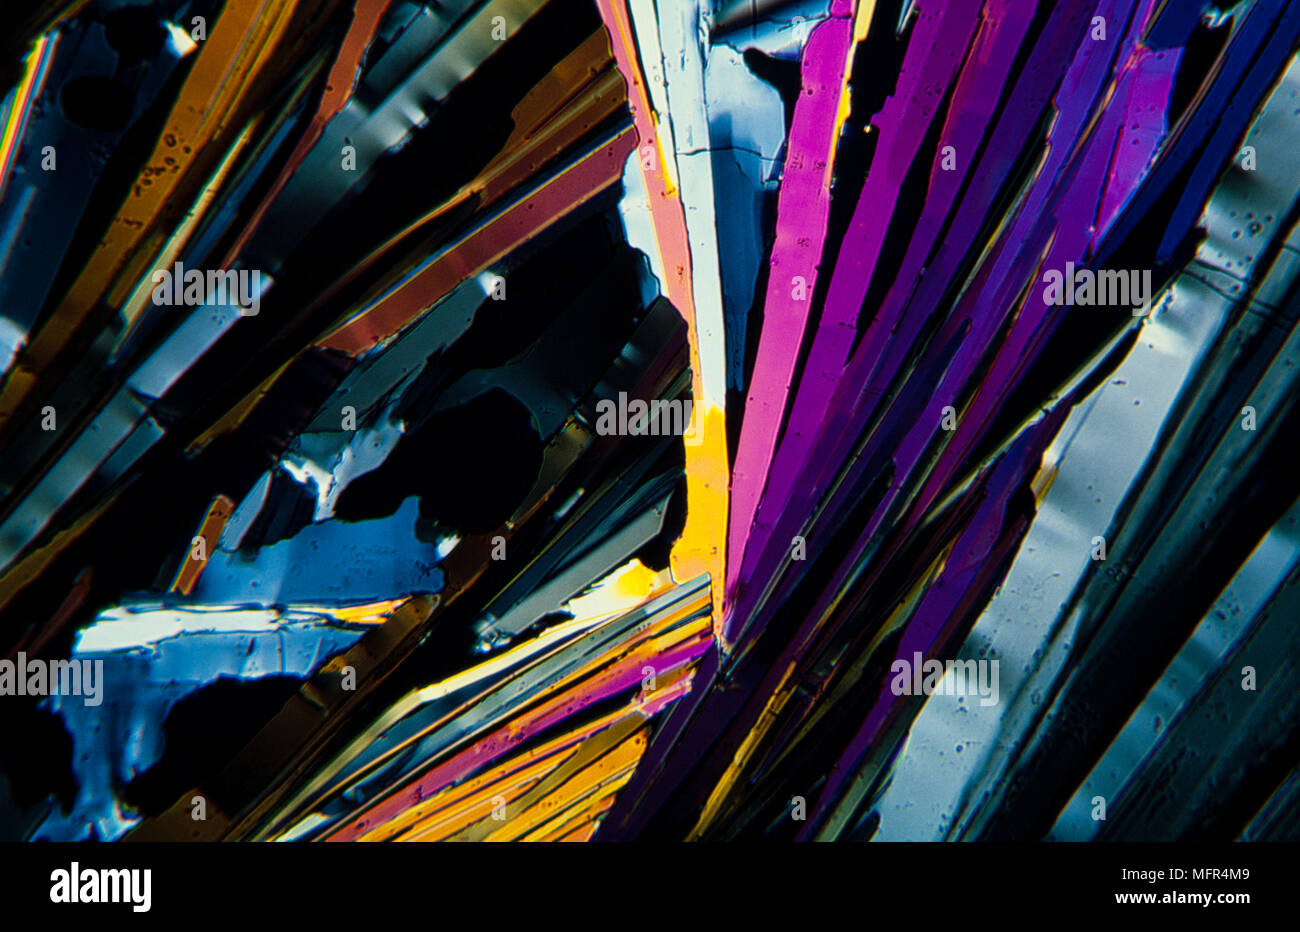 Benzoic acid cristals photomicrography with polarized light. Portugal - Stock Image